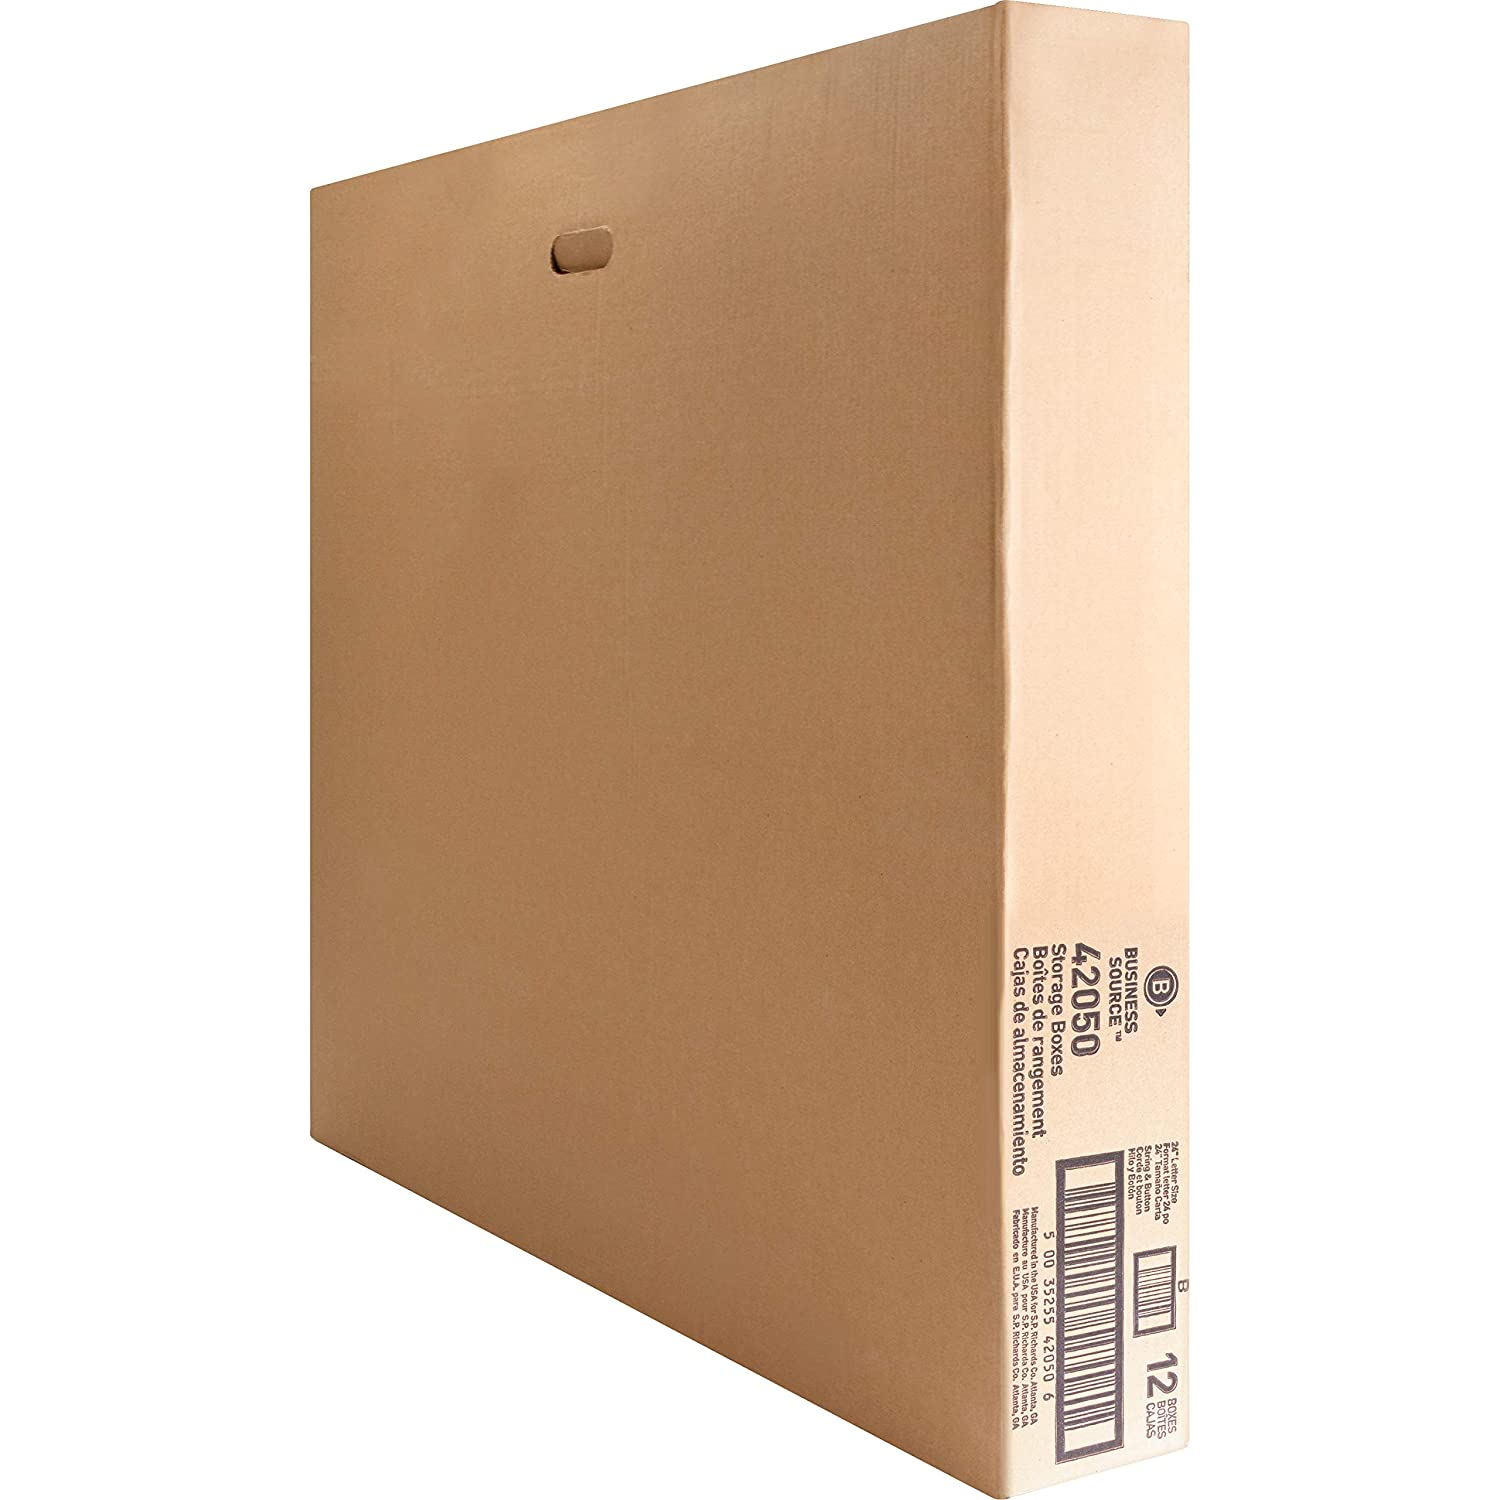 Amazon.com : Business Source Corrugated File Box (BSN42050) : Record Storage Boxes : Office Products